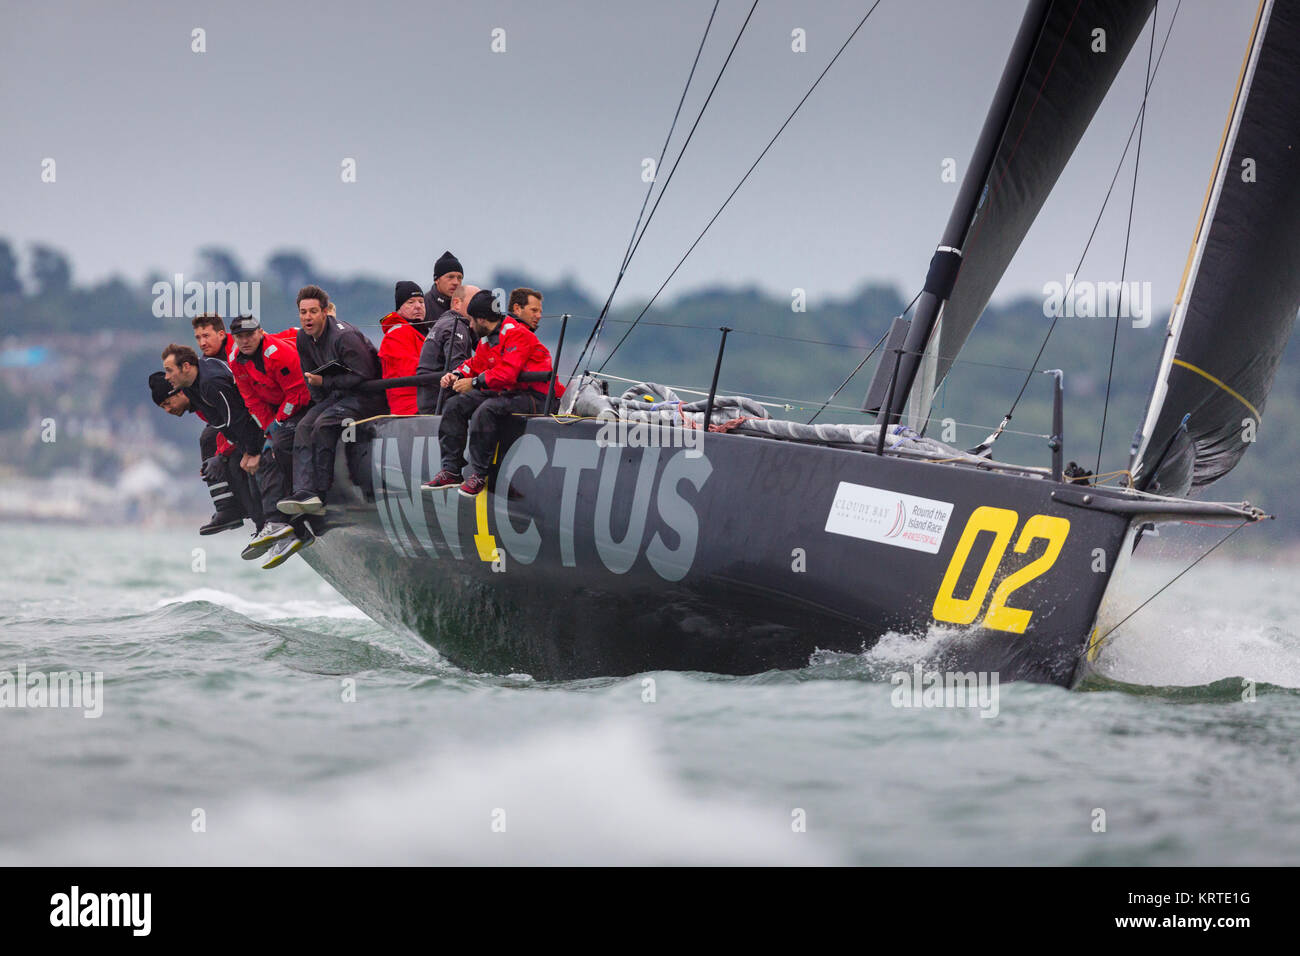 Sir Keith Mills (fourth from the right) on board his racing yacht Invictus as they take part in the annual Round - Stock Image